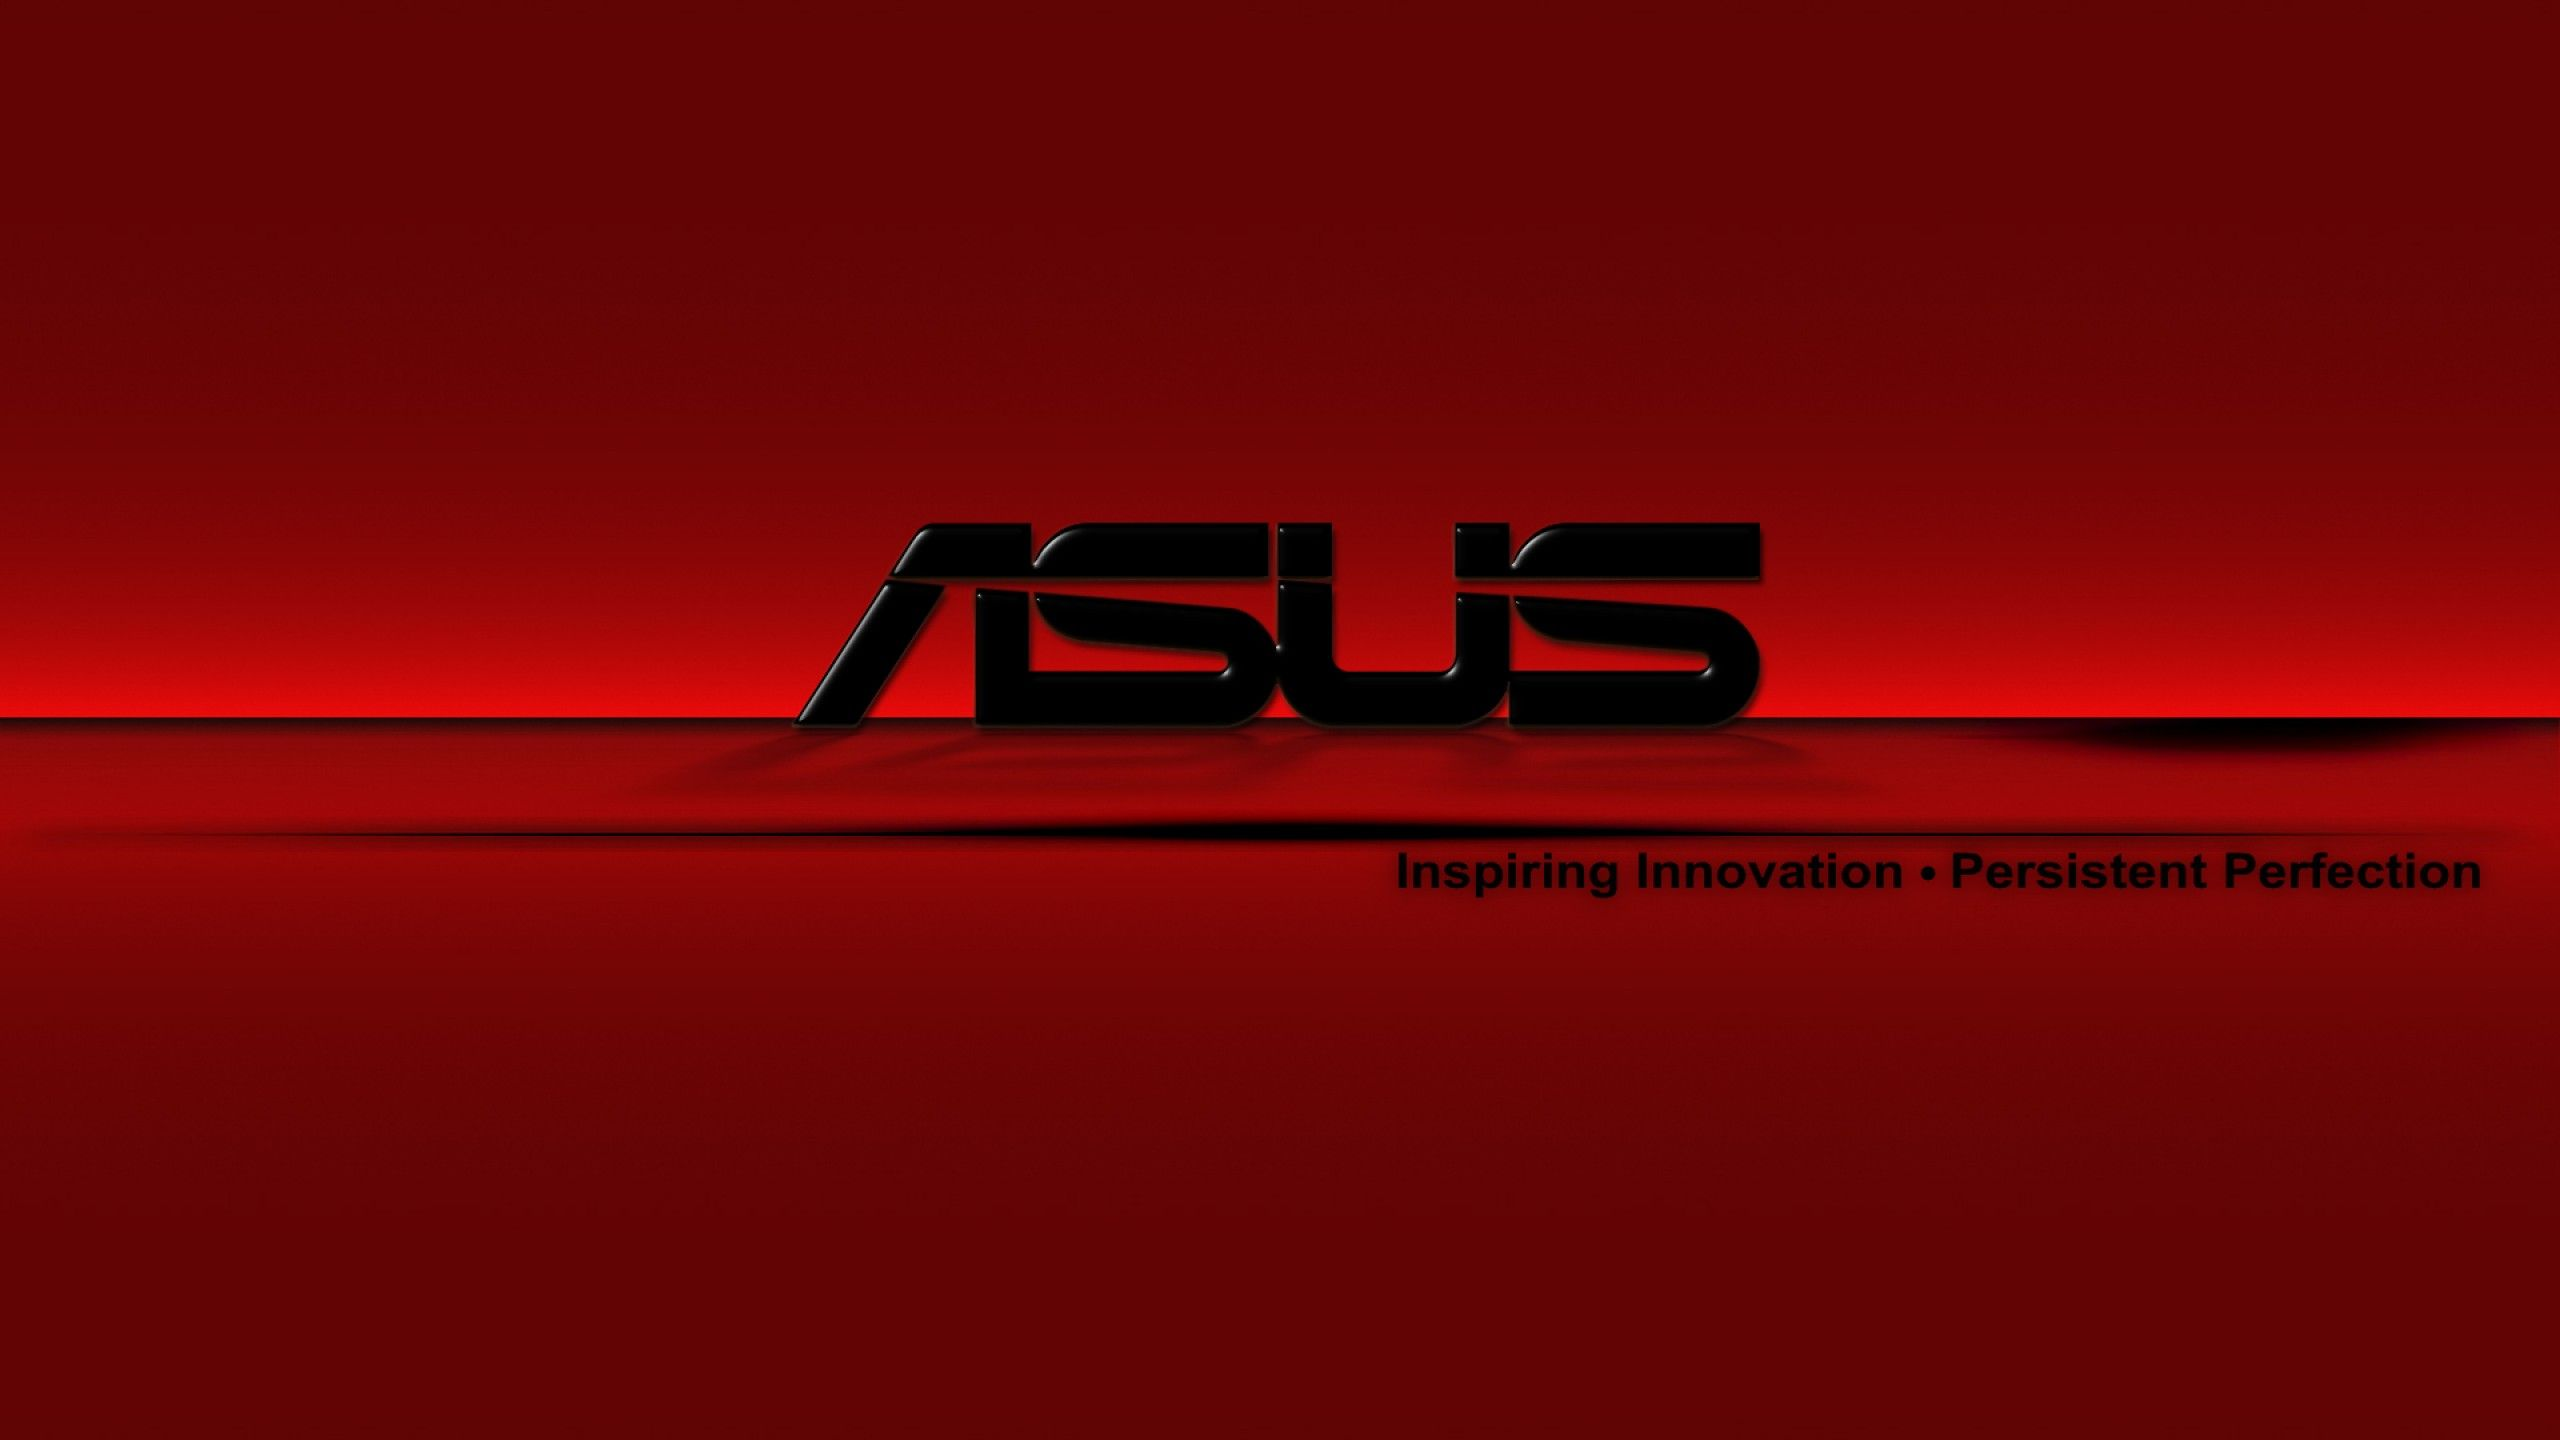 Red Asus Hd Wallpaper Id 1167 Download Page Background Hd Wallpaper Hd Wallpaper Wallpaper